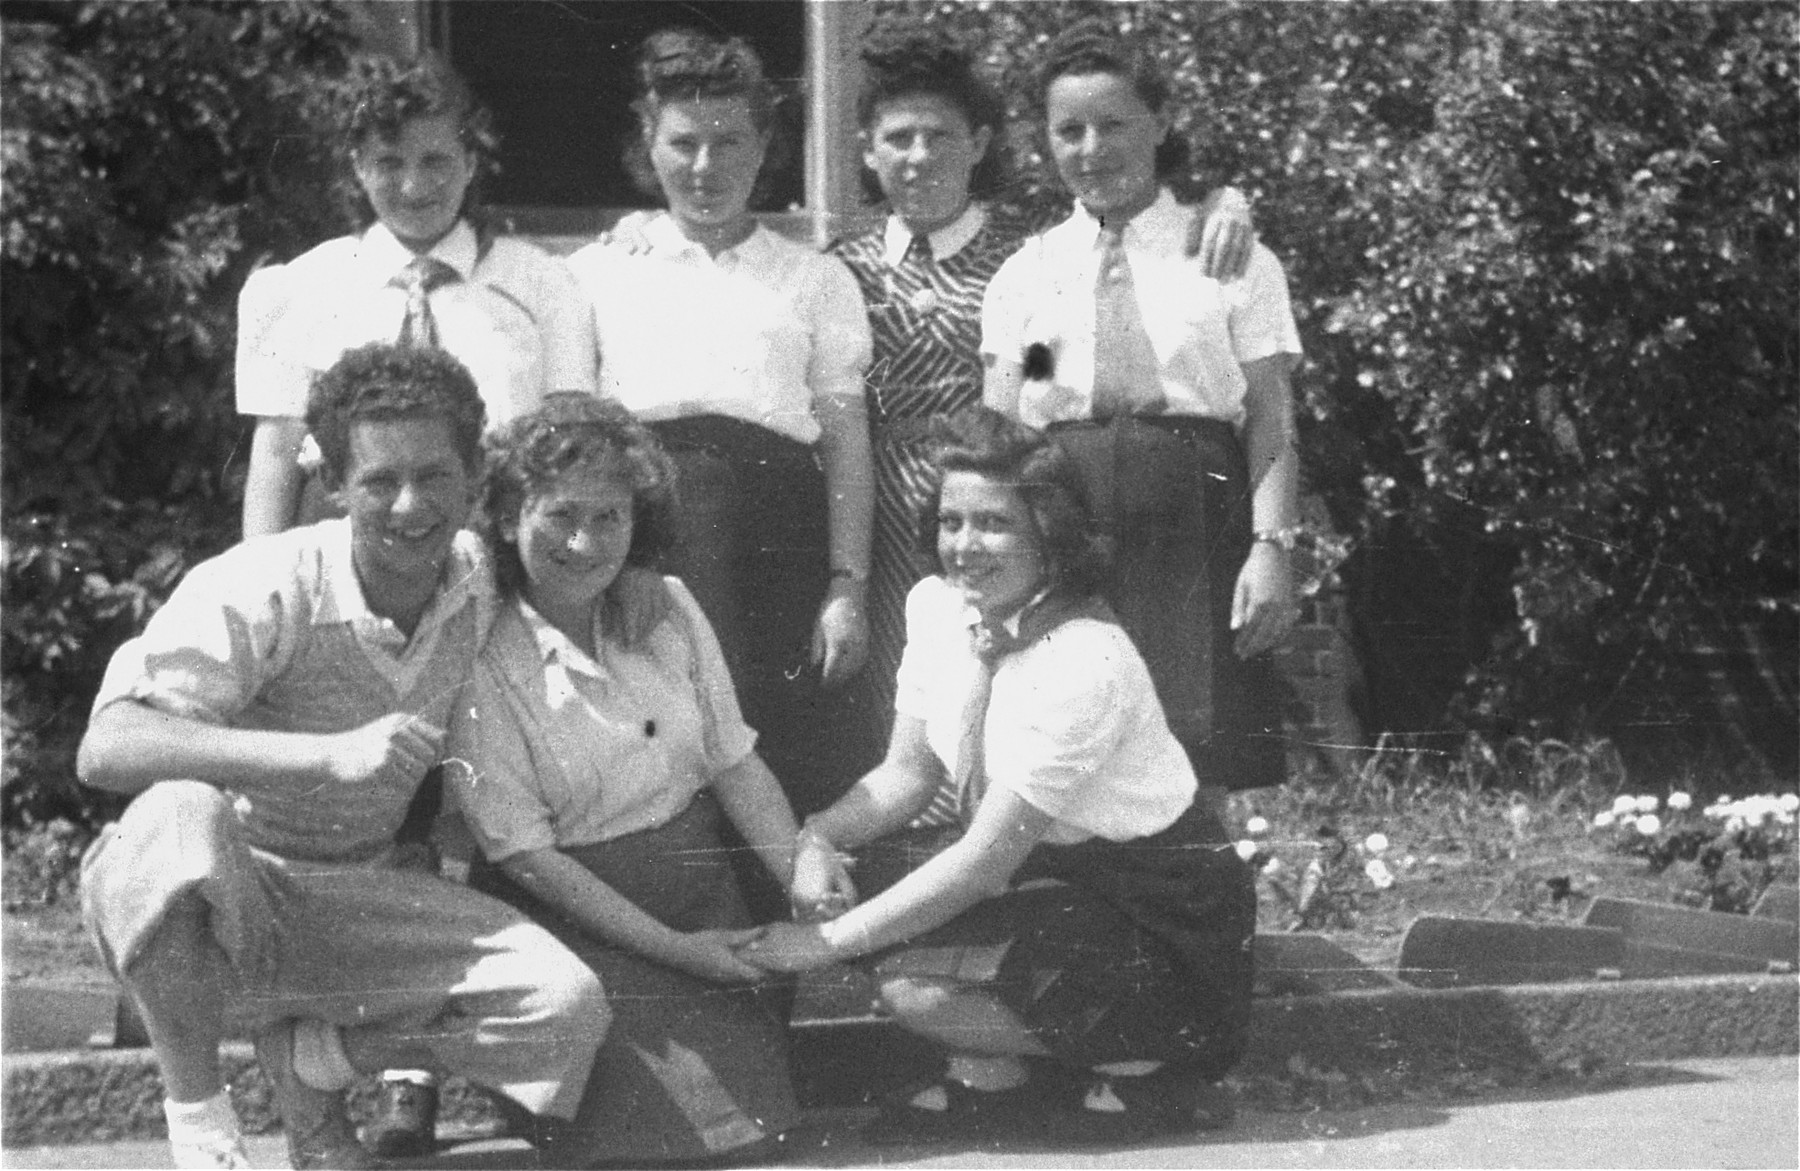 Group portrait of high school students in the Bergen-Belsen displaced persons camp.    Among those pictured is Rozia Merin (front row, far right) and Avram Pukacz (front row, left).